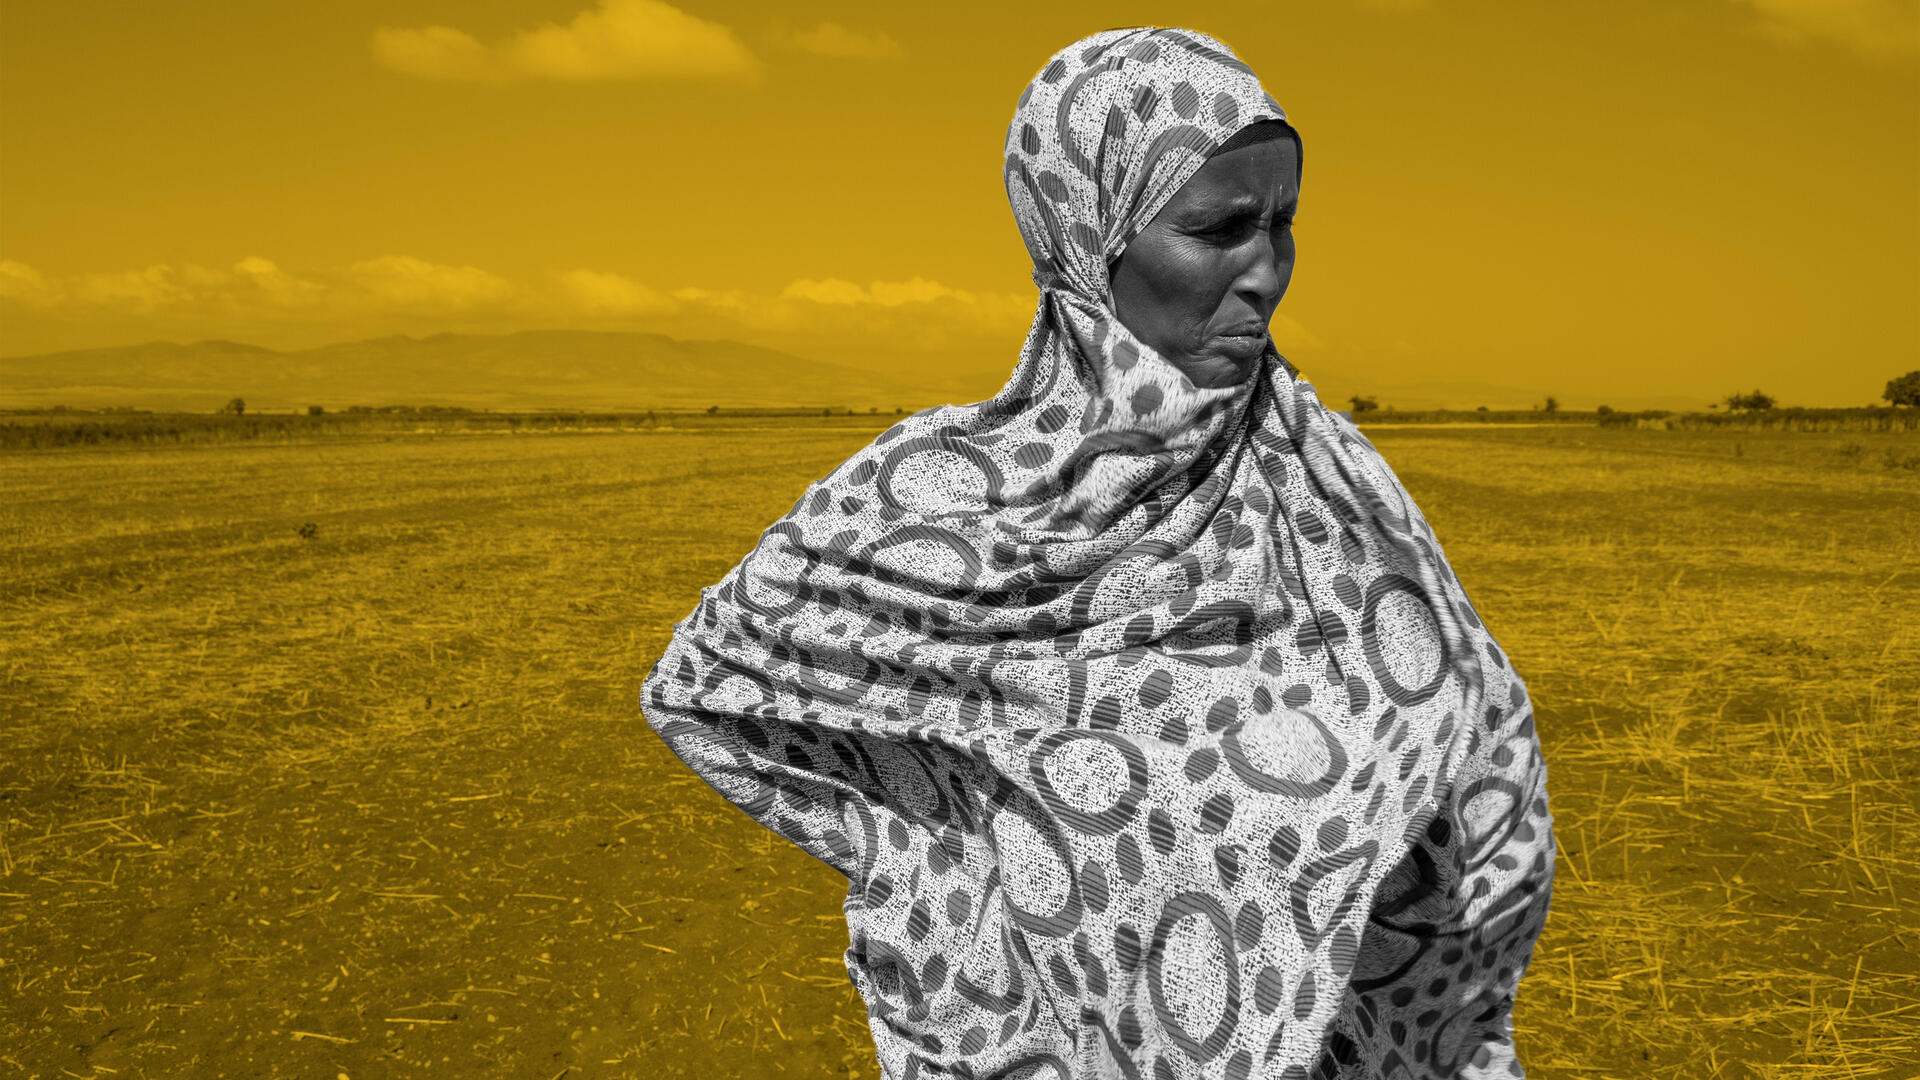 An elderly woman in Ethiopia stands in a dry field, hands at her hips.